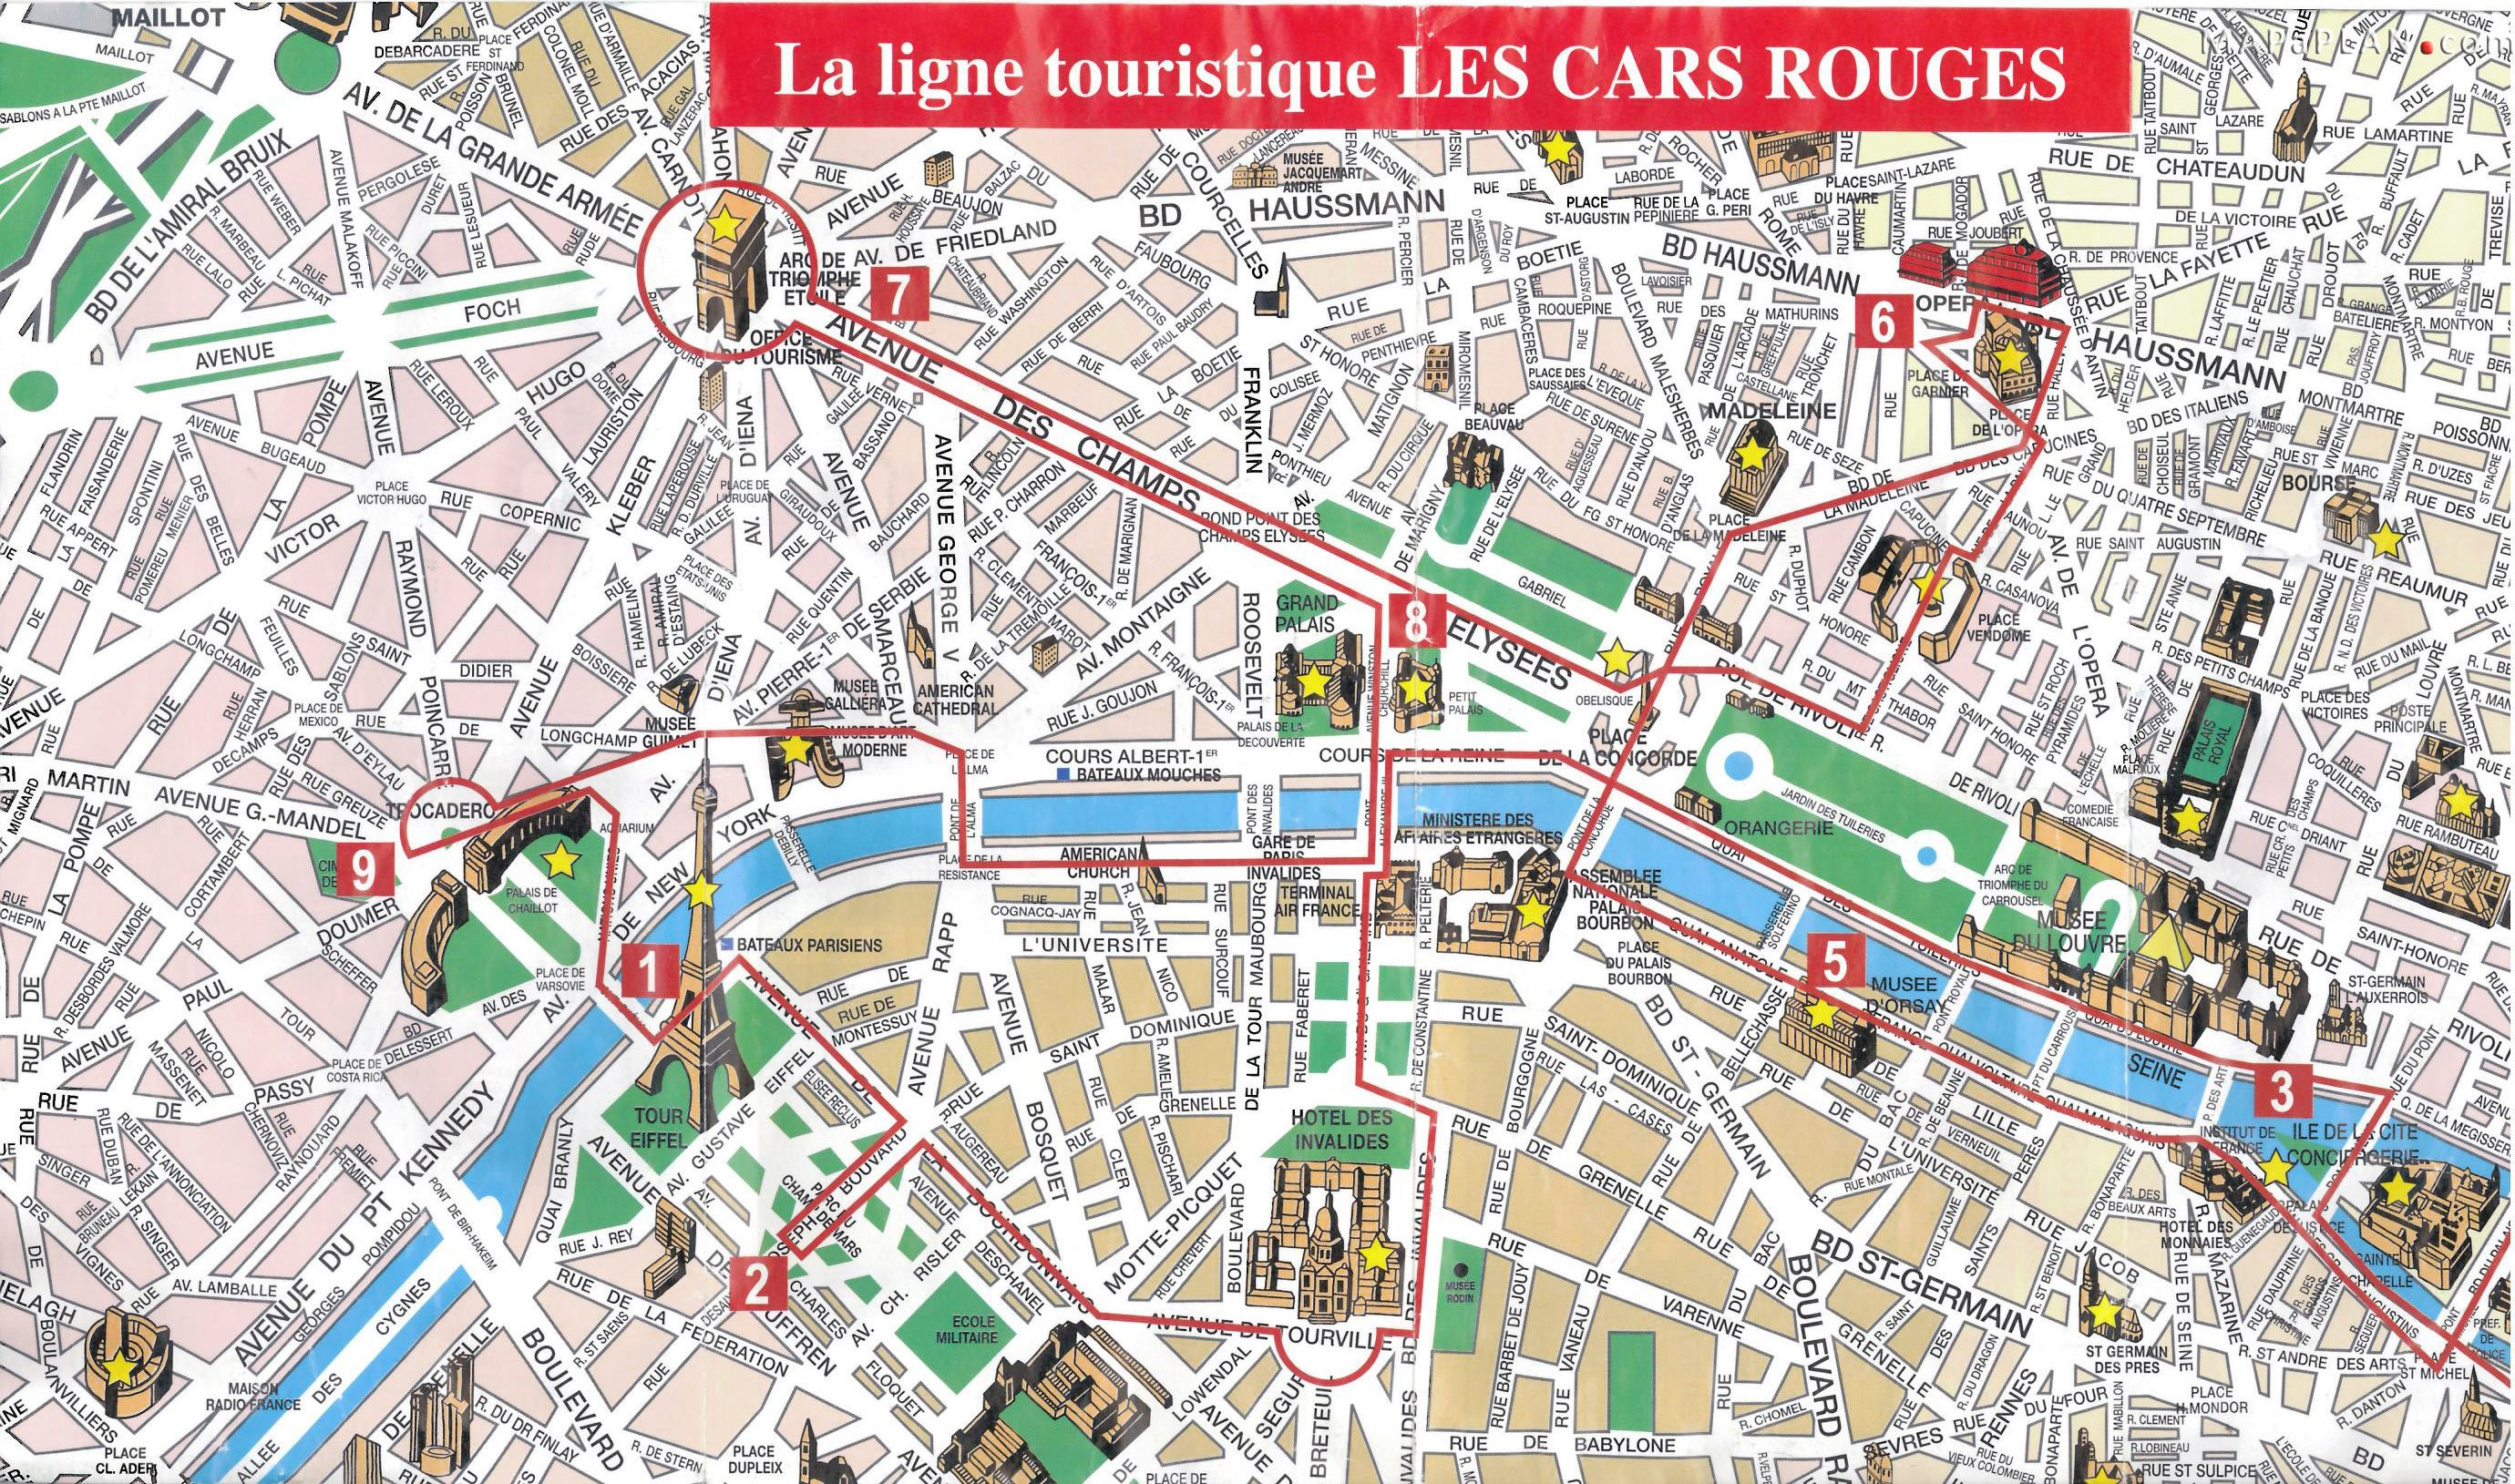 Paris Top Tourist Attractions Map City Sightseeting Route Planner - Usa maps route planner